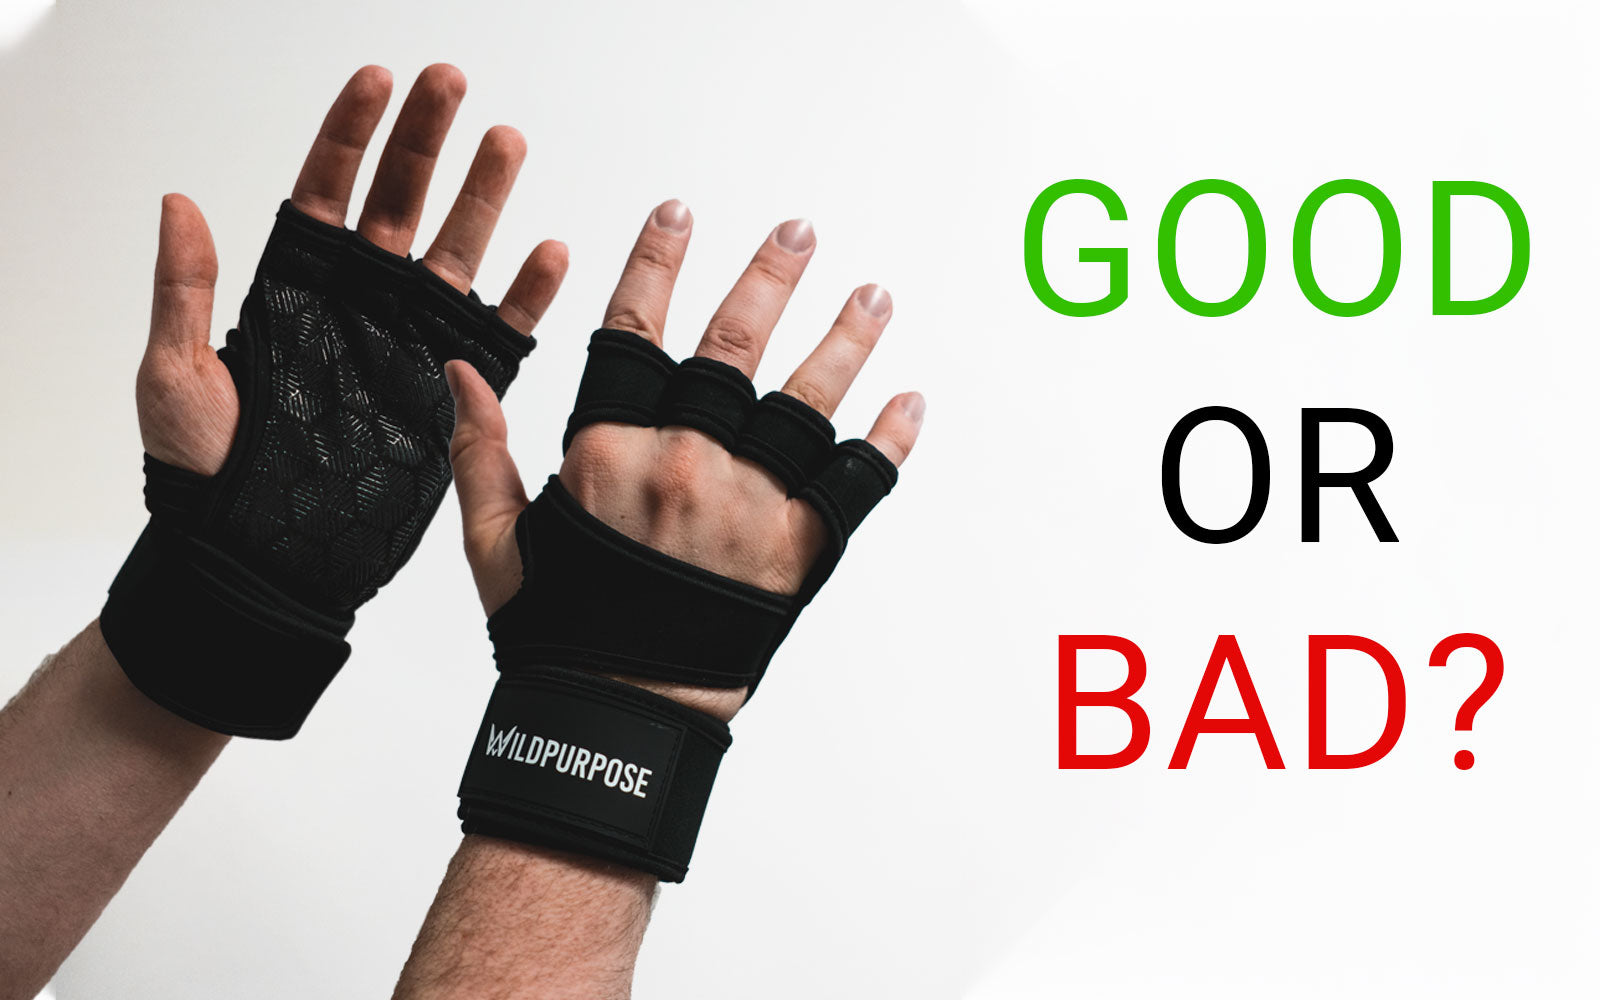 Have you been to the gym and asked yourself: why use weight lifting gloves? Or Should I use gloves to lift weights? Well in this article we're going to be breaking down all the useful information to answer the question of why use weight lifting gloves, ar